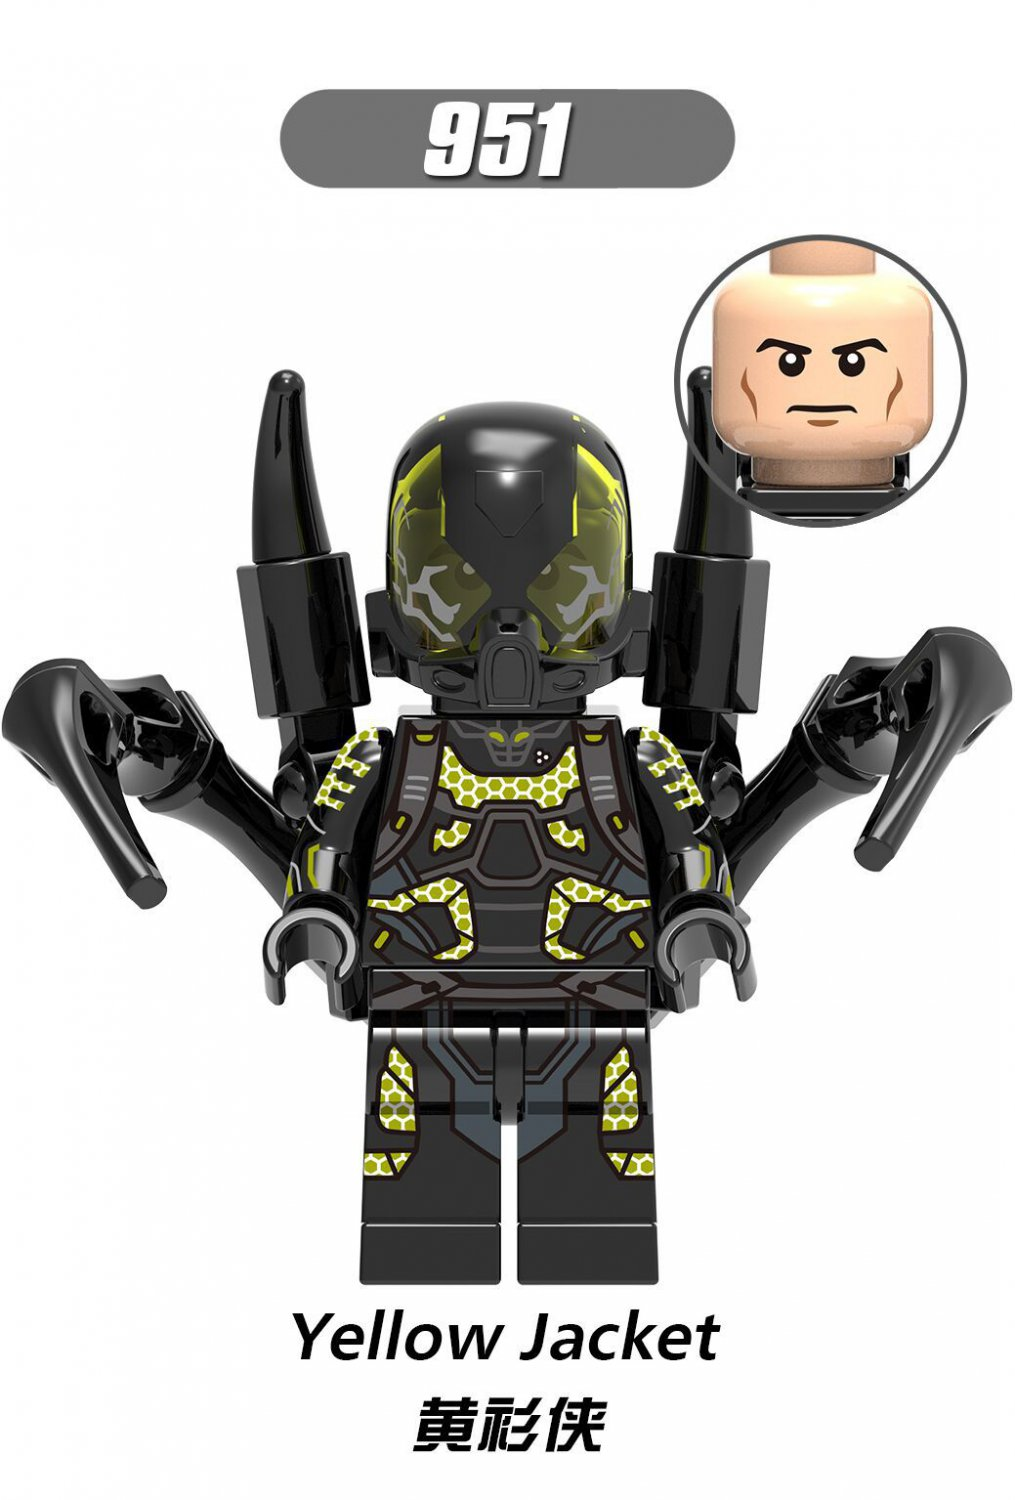 Yellow Jacket Minifigures Lego Compatible Super Heroes Toy